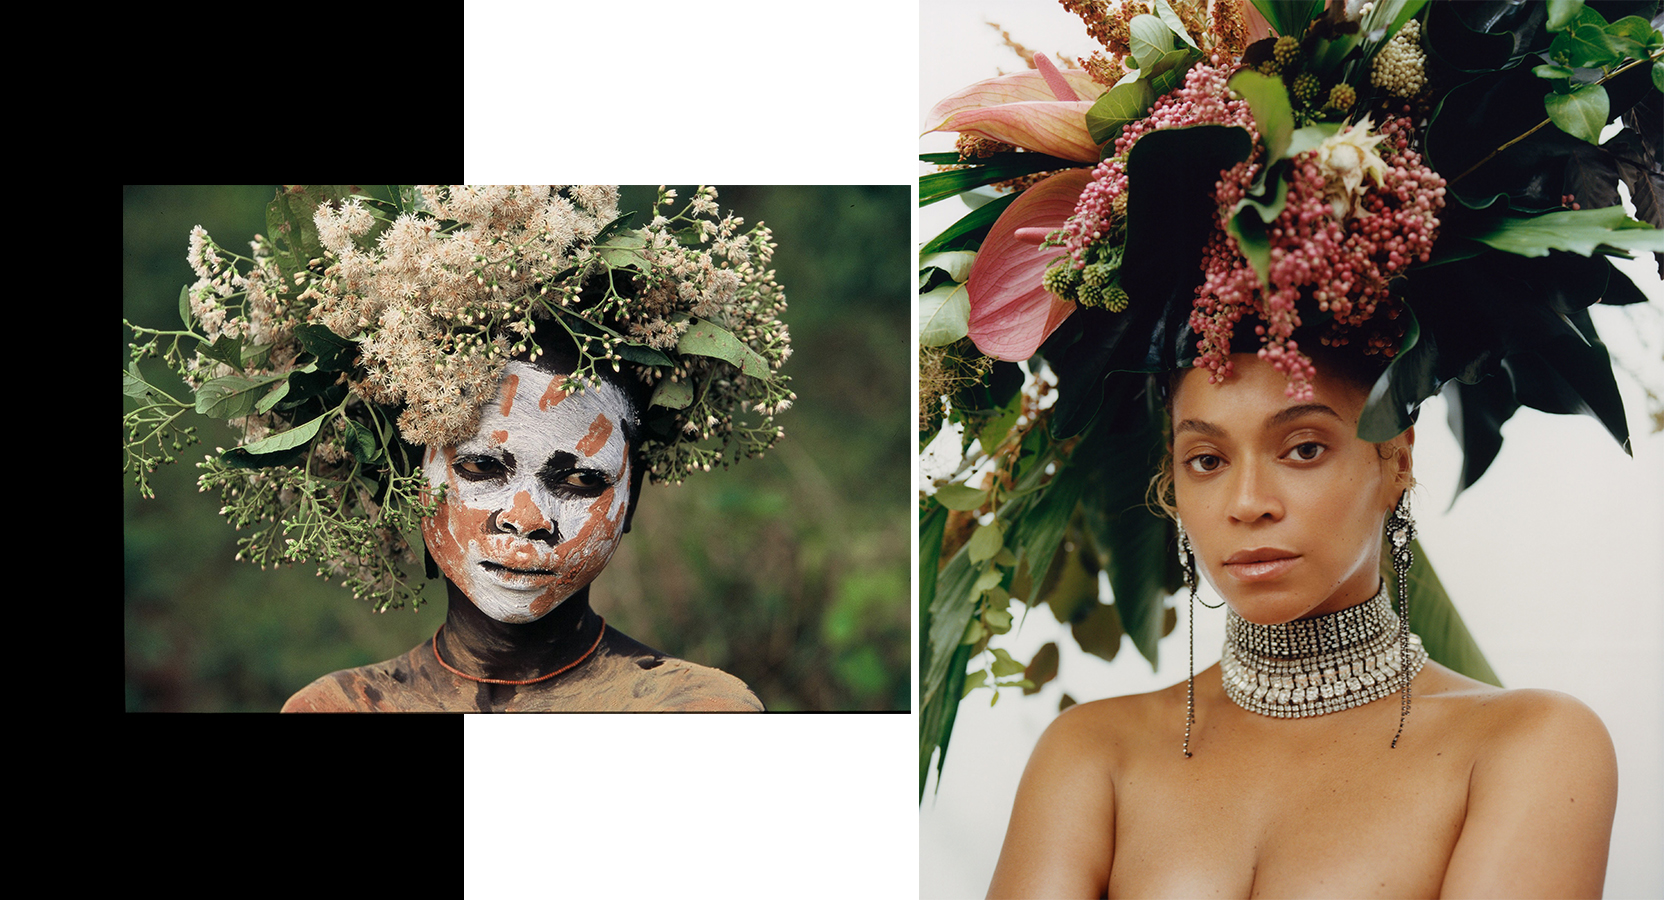 Left: 'Natural Fashion n.173', 2006-2007 by ©HANS SILVESTER — Right: Beyoncé photographed by TYLER MITCHELL, VOGUE, September 2018